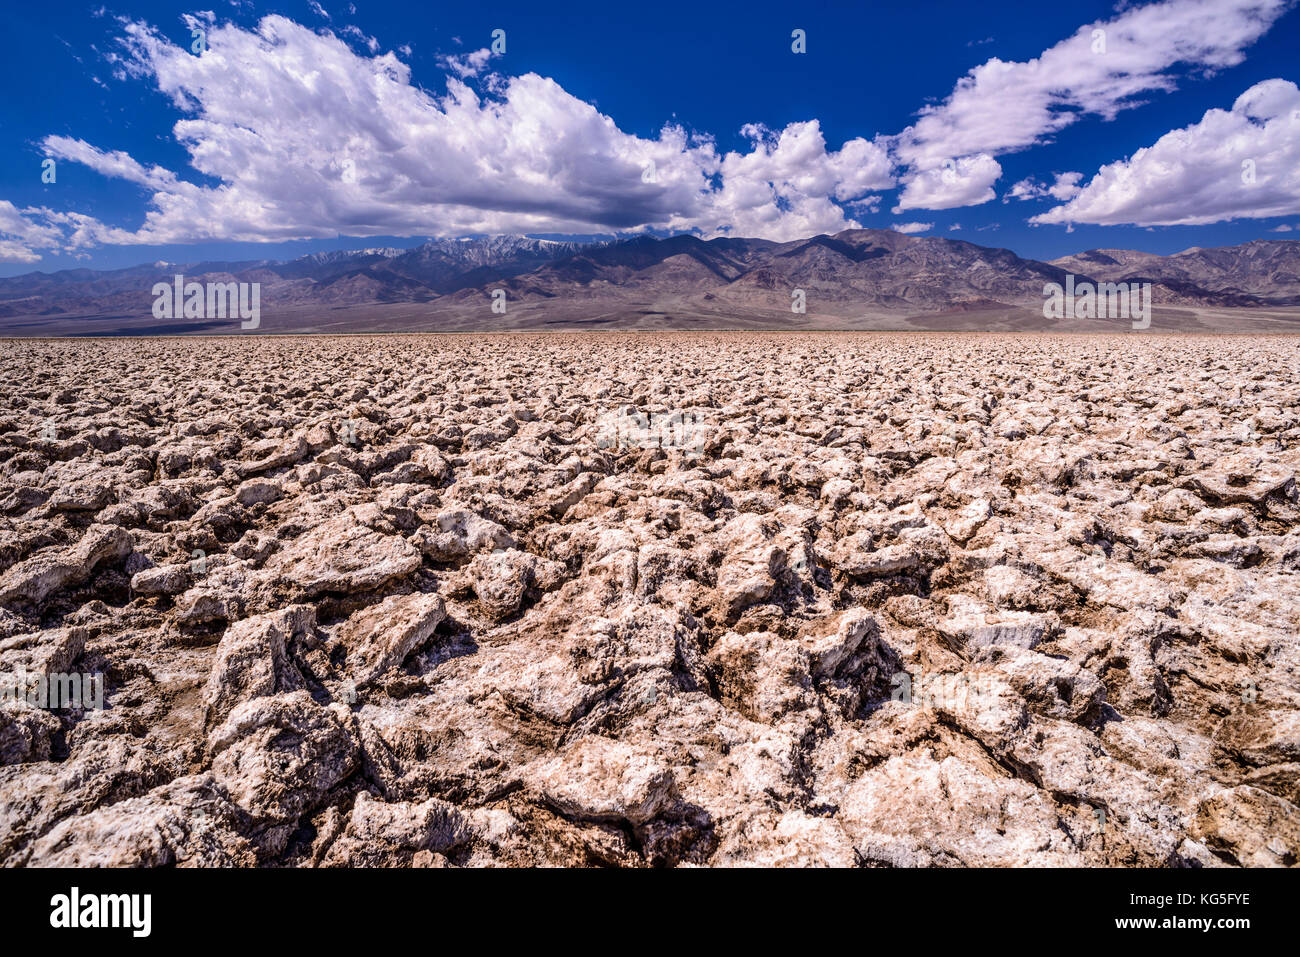 The USA, California, Death Valley National Park, Badwater Basin, Devils Golf Course, salt structures towards Panamint - Stock Image